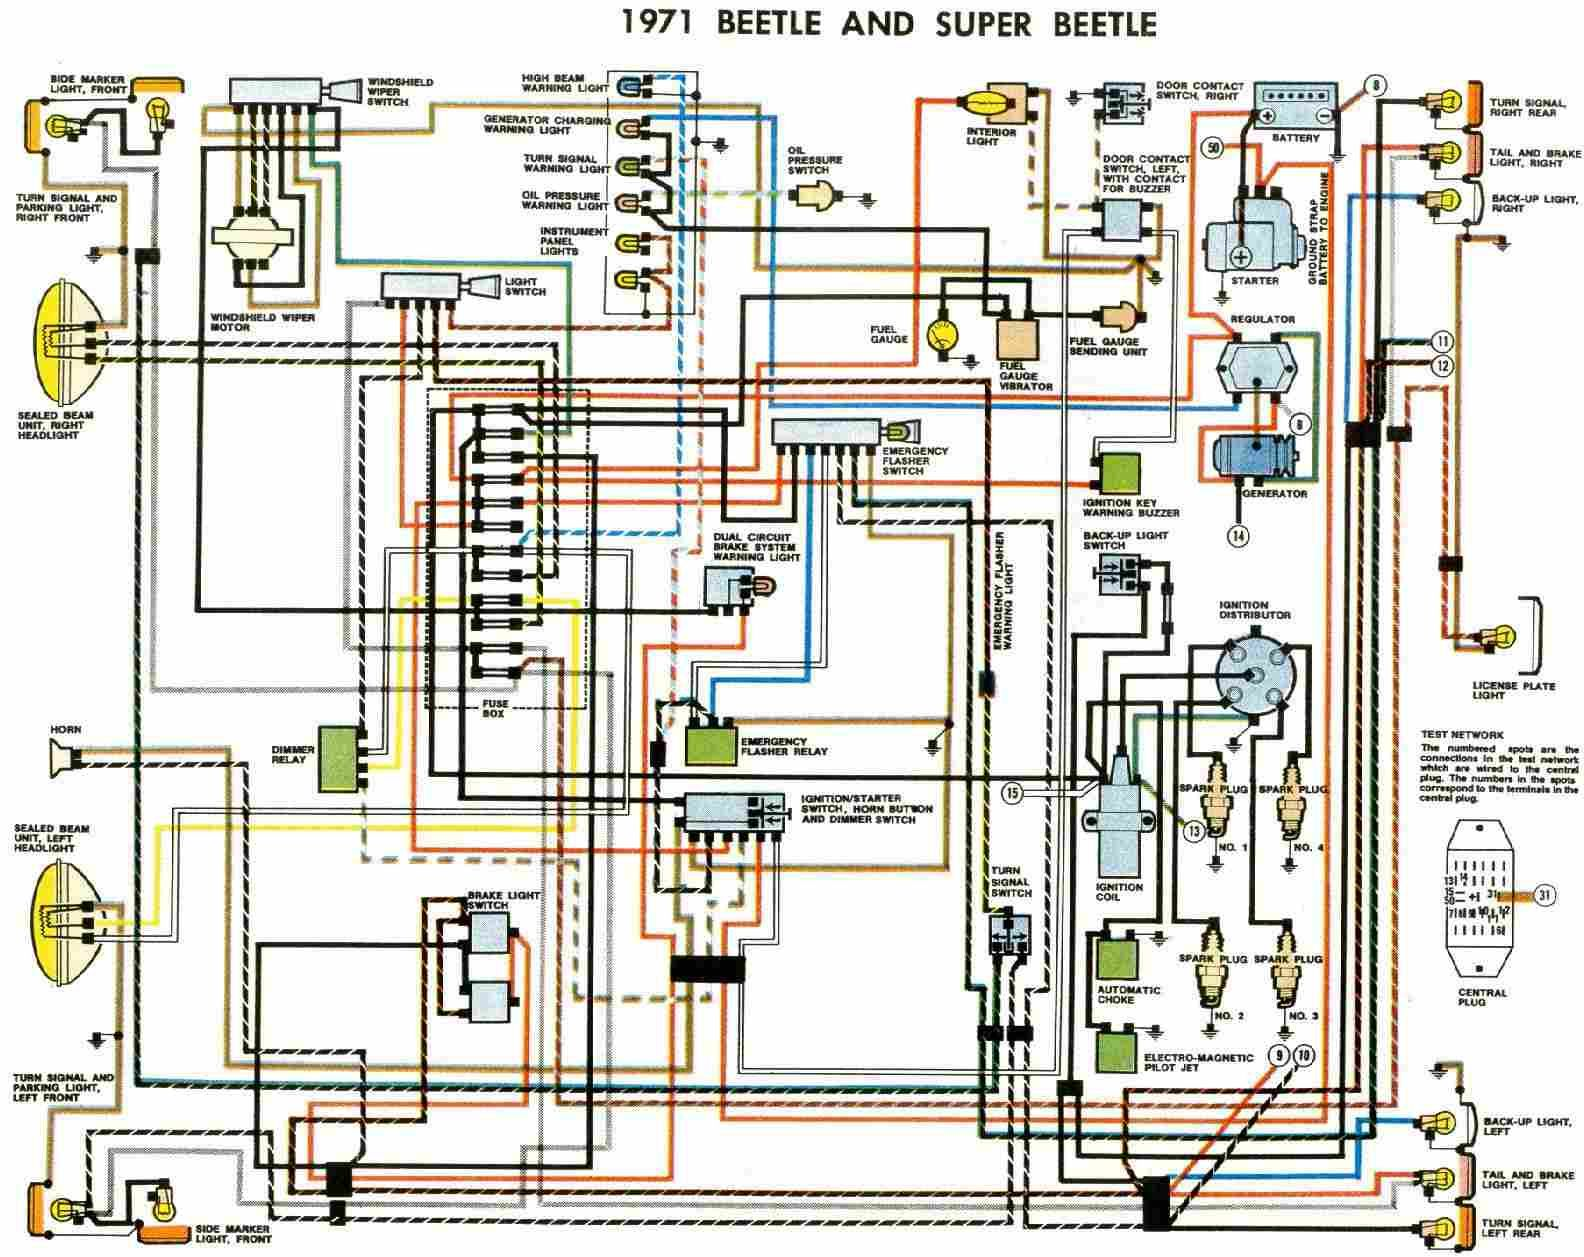 medium resolution of pin by cole fox on super beetle vw beetles beetle volkswagen rh pinterest com international farmall super a wiring diagram super beetle wiring diagram